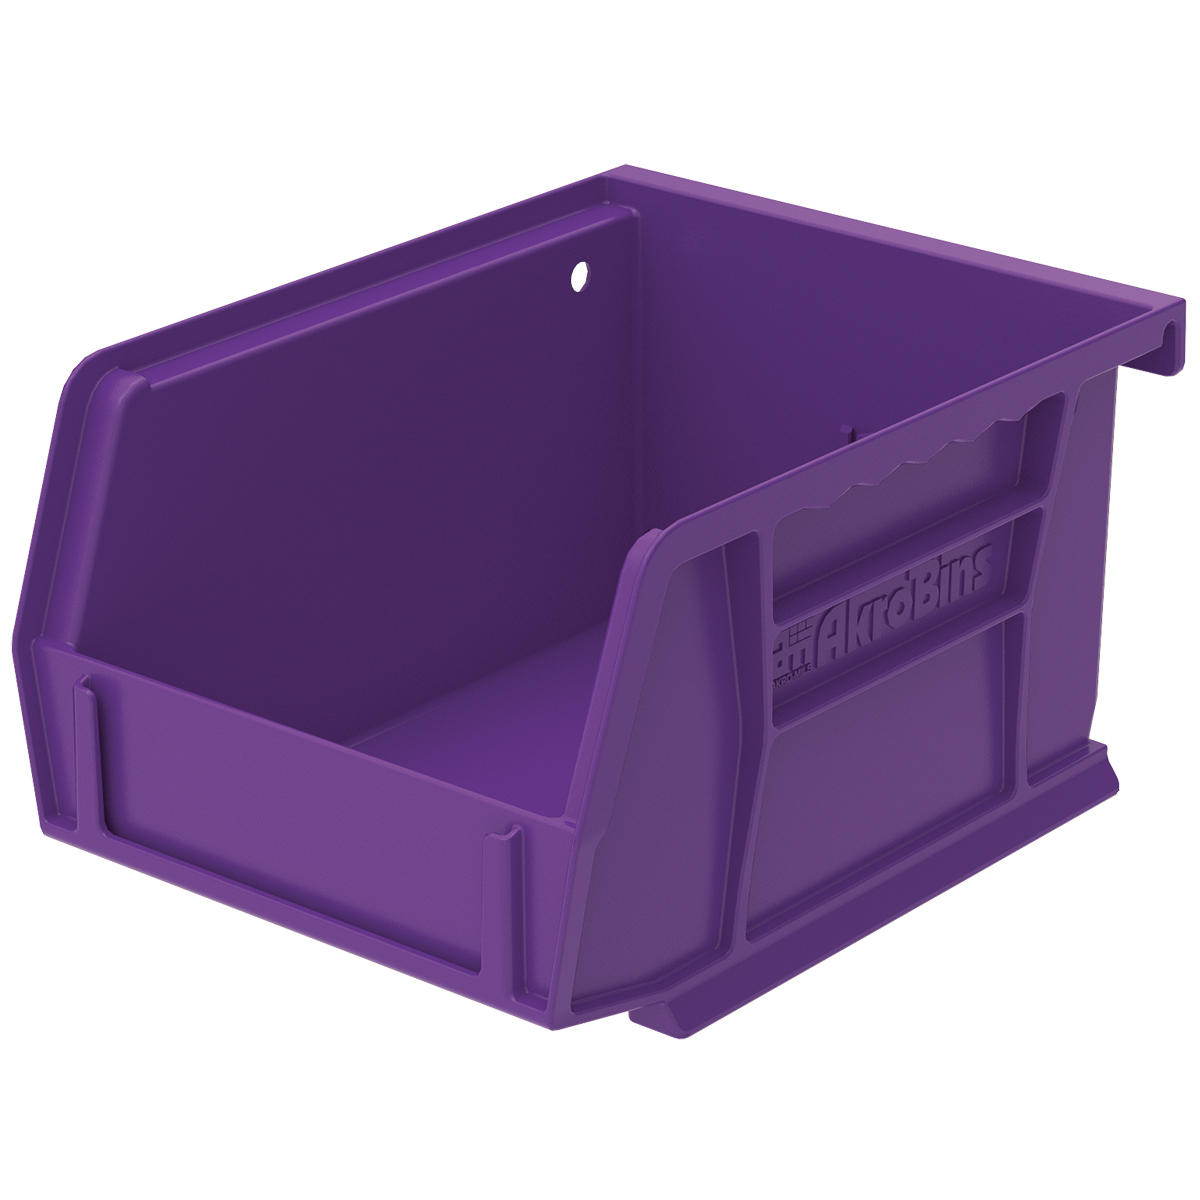 AkroBin 5-3/8 x 4-1/8 x 3, Purple (30210PURPL).  This item sold in carton quantities of 24.